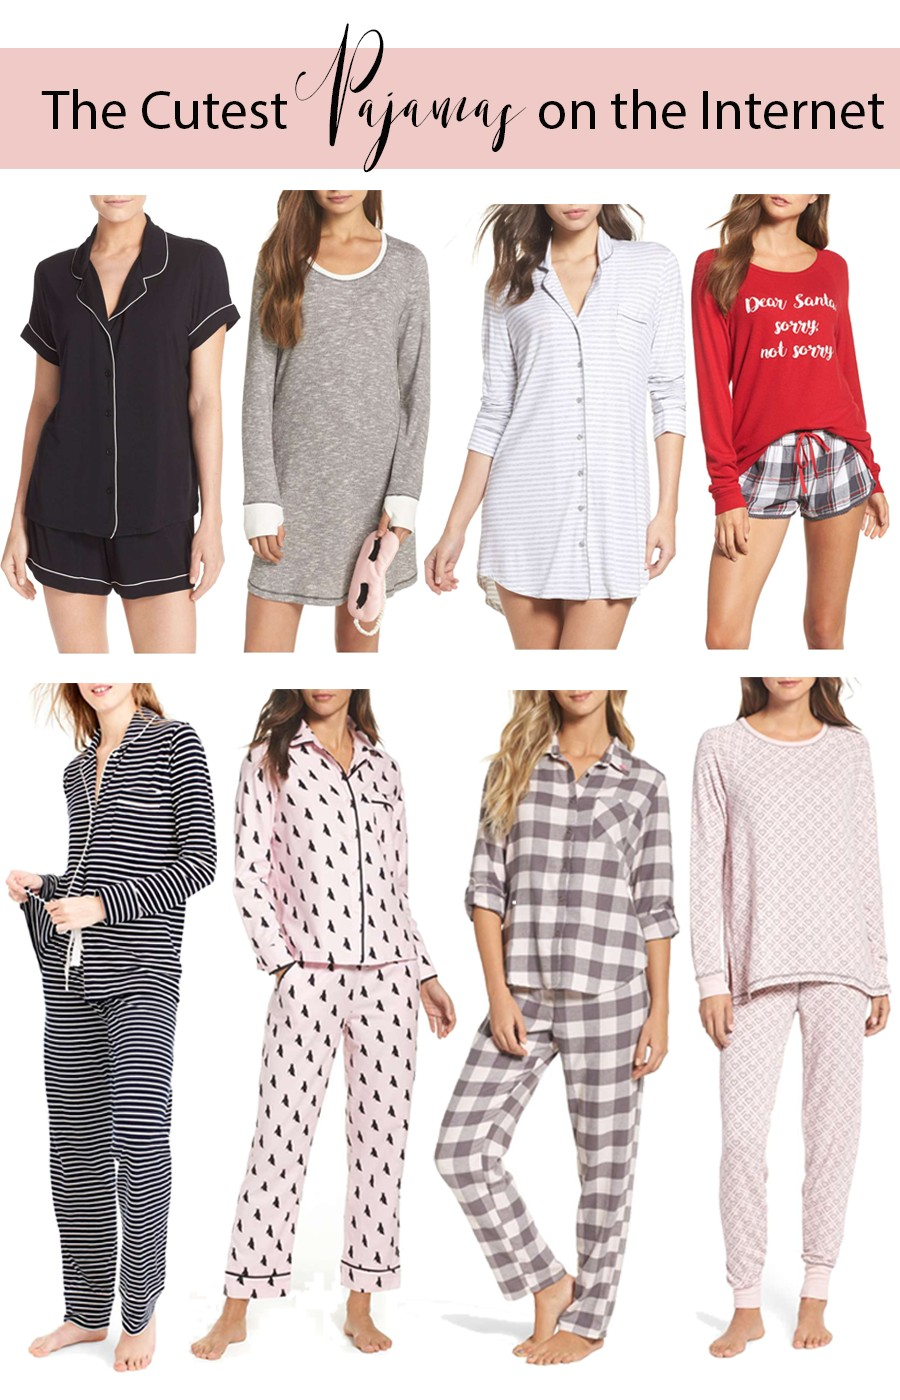 The Cutest Pajamas on the Internet - Love Amy Cotton